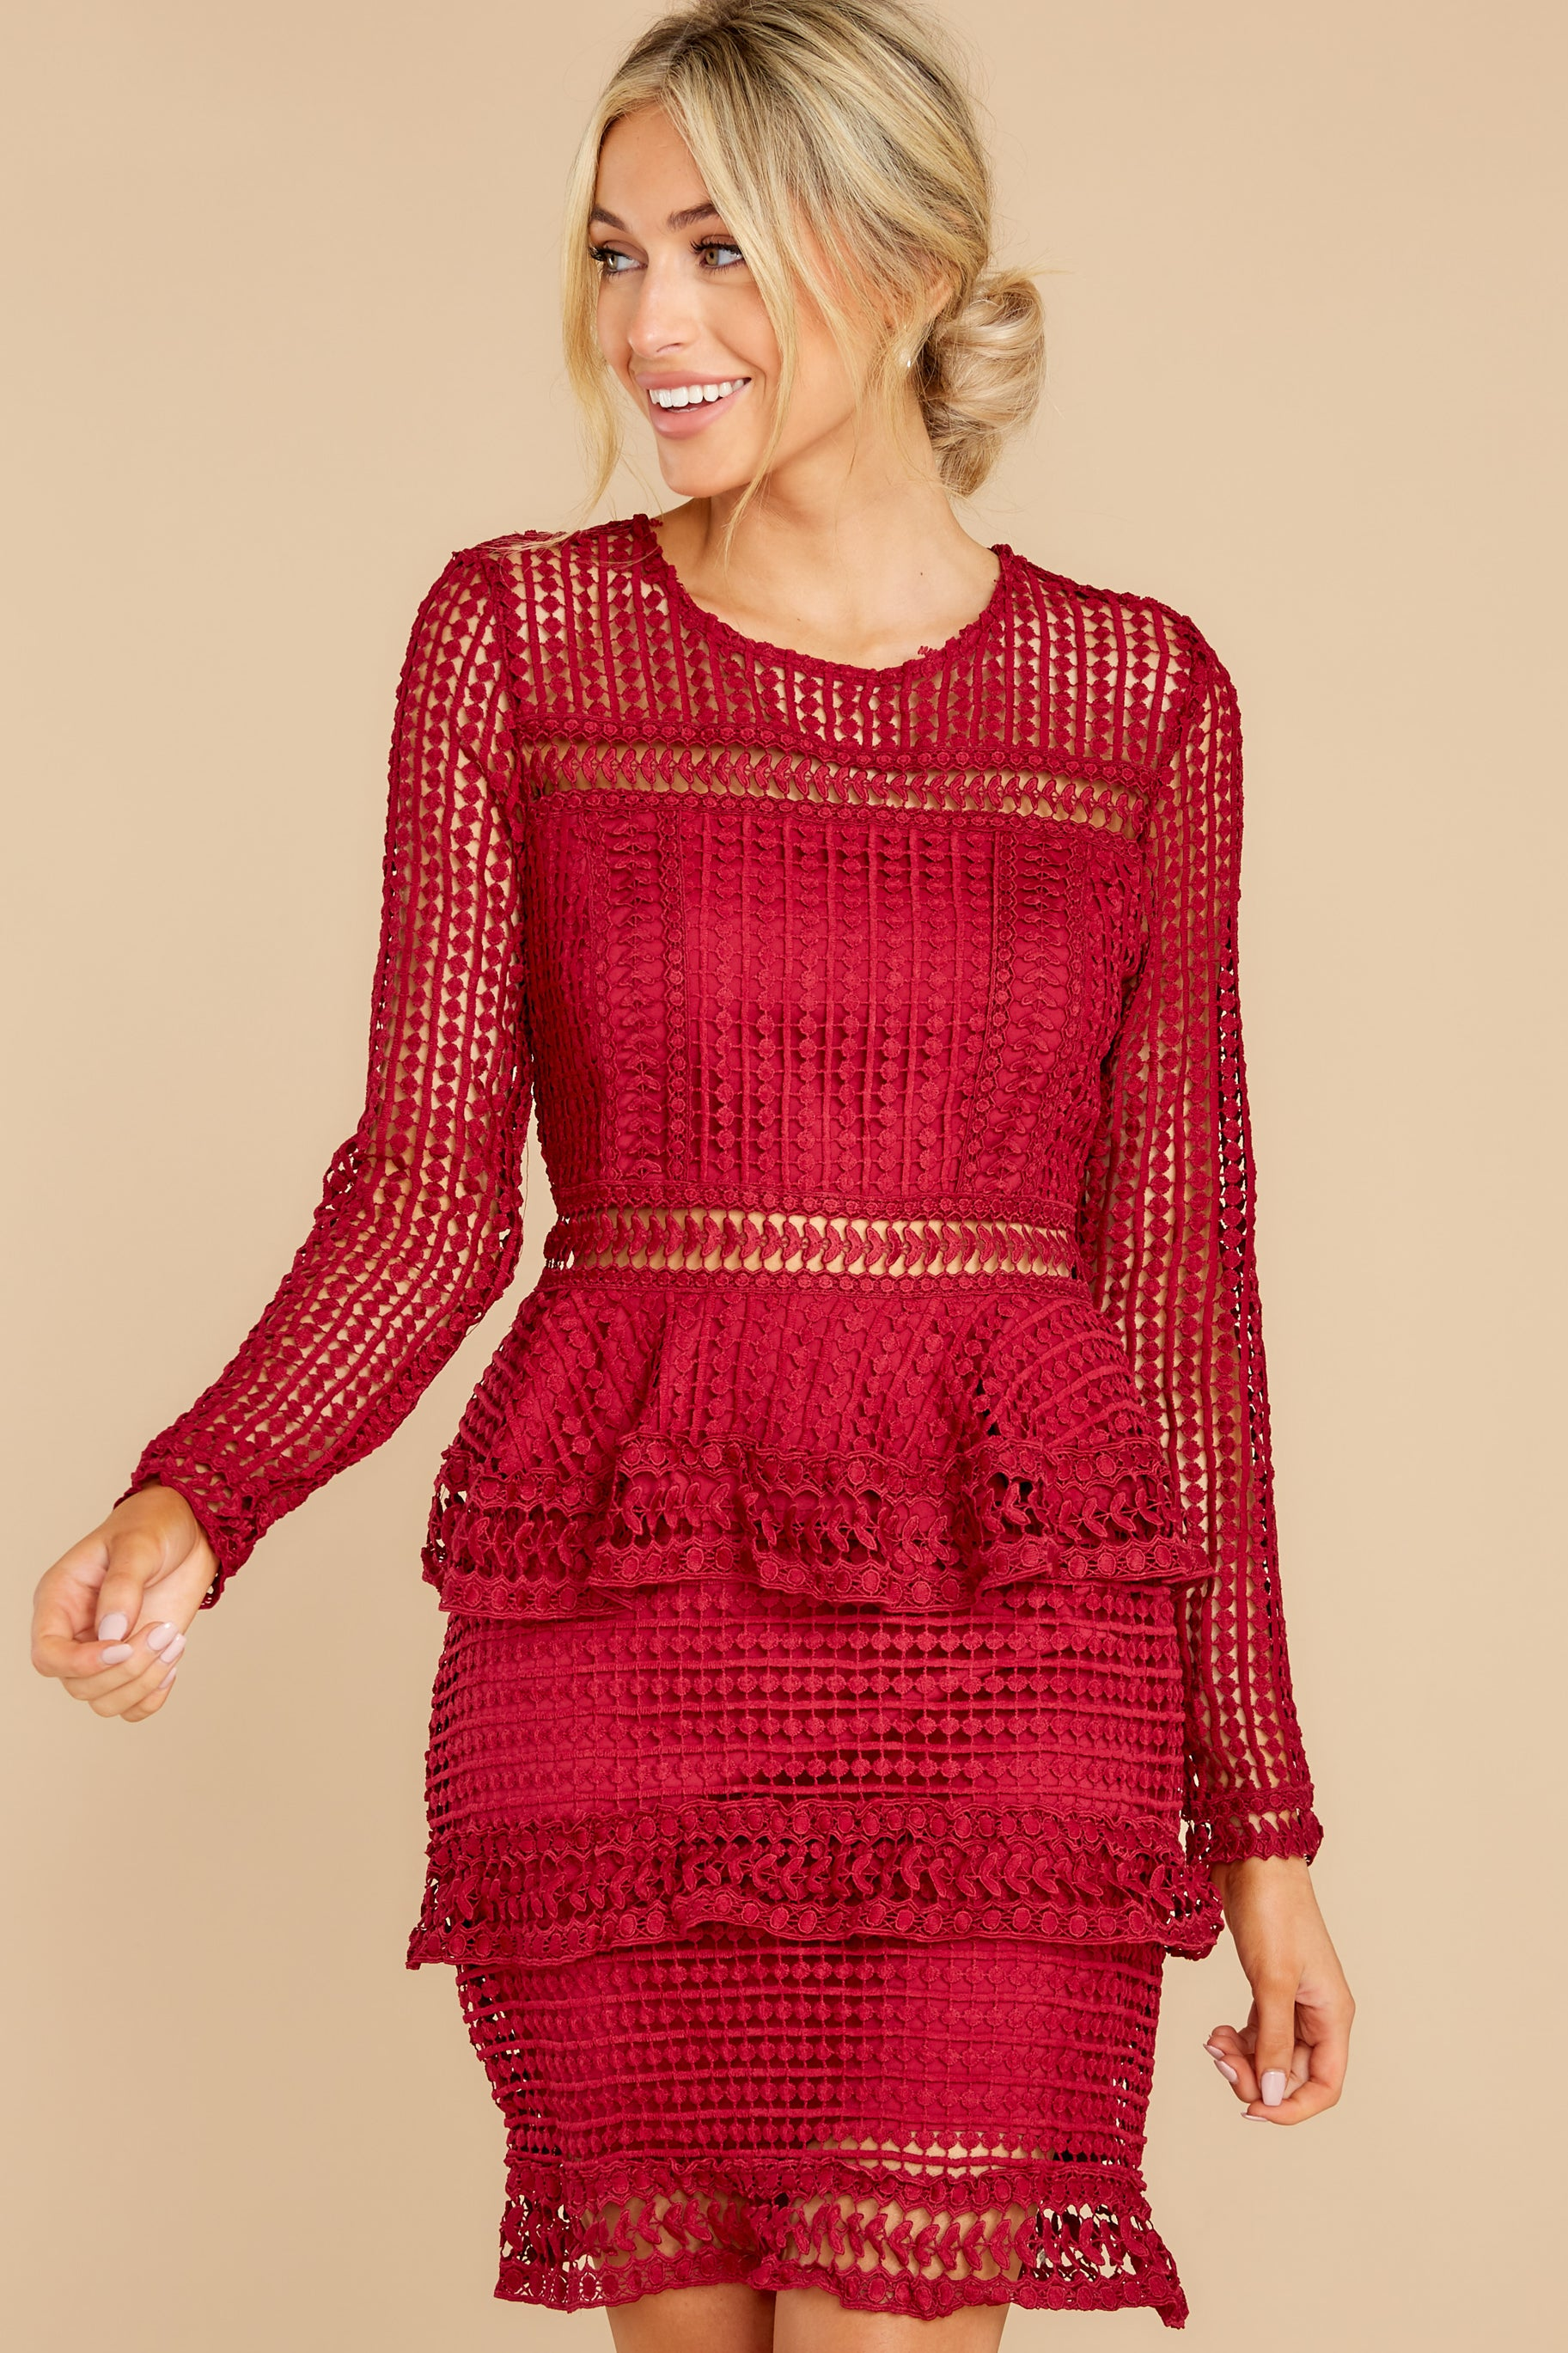 6 Out For Love Burgundy Lace Dress at reddress.com